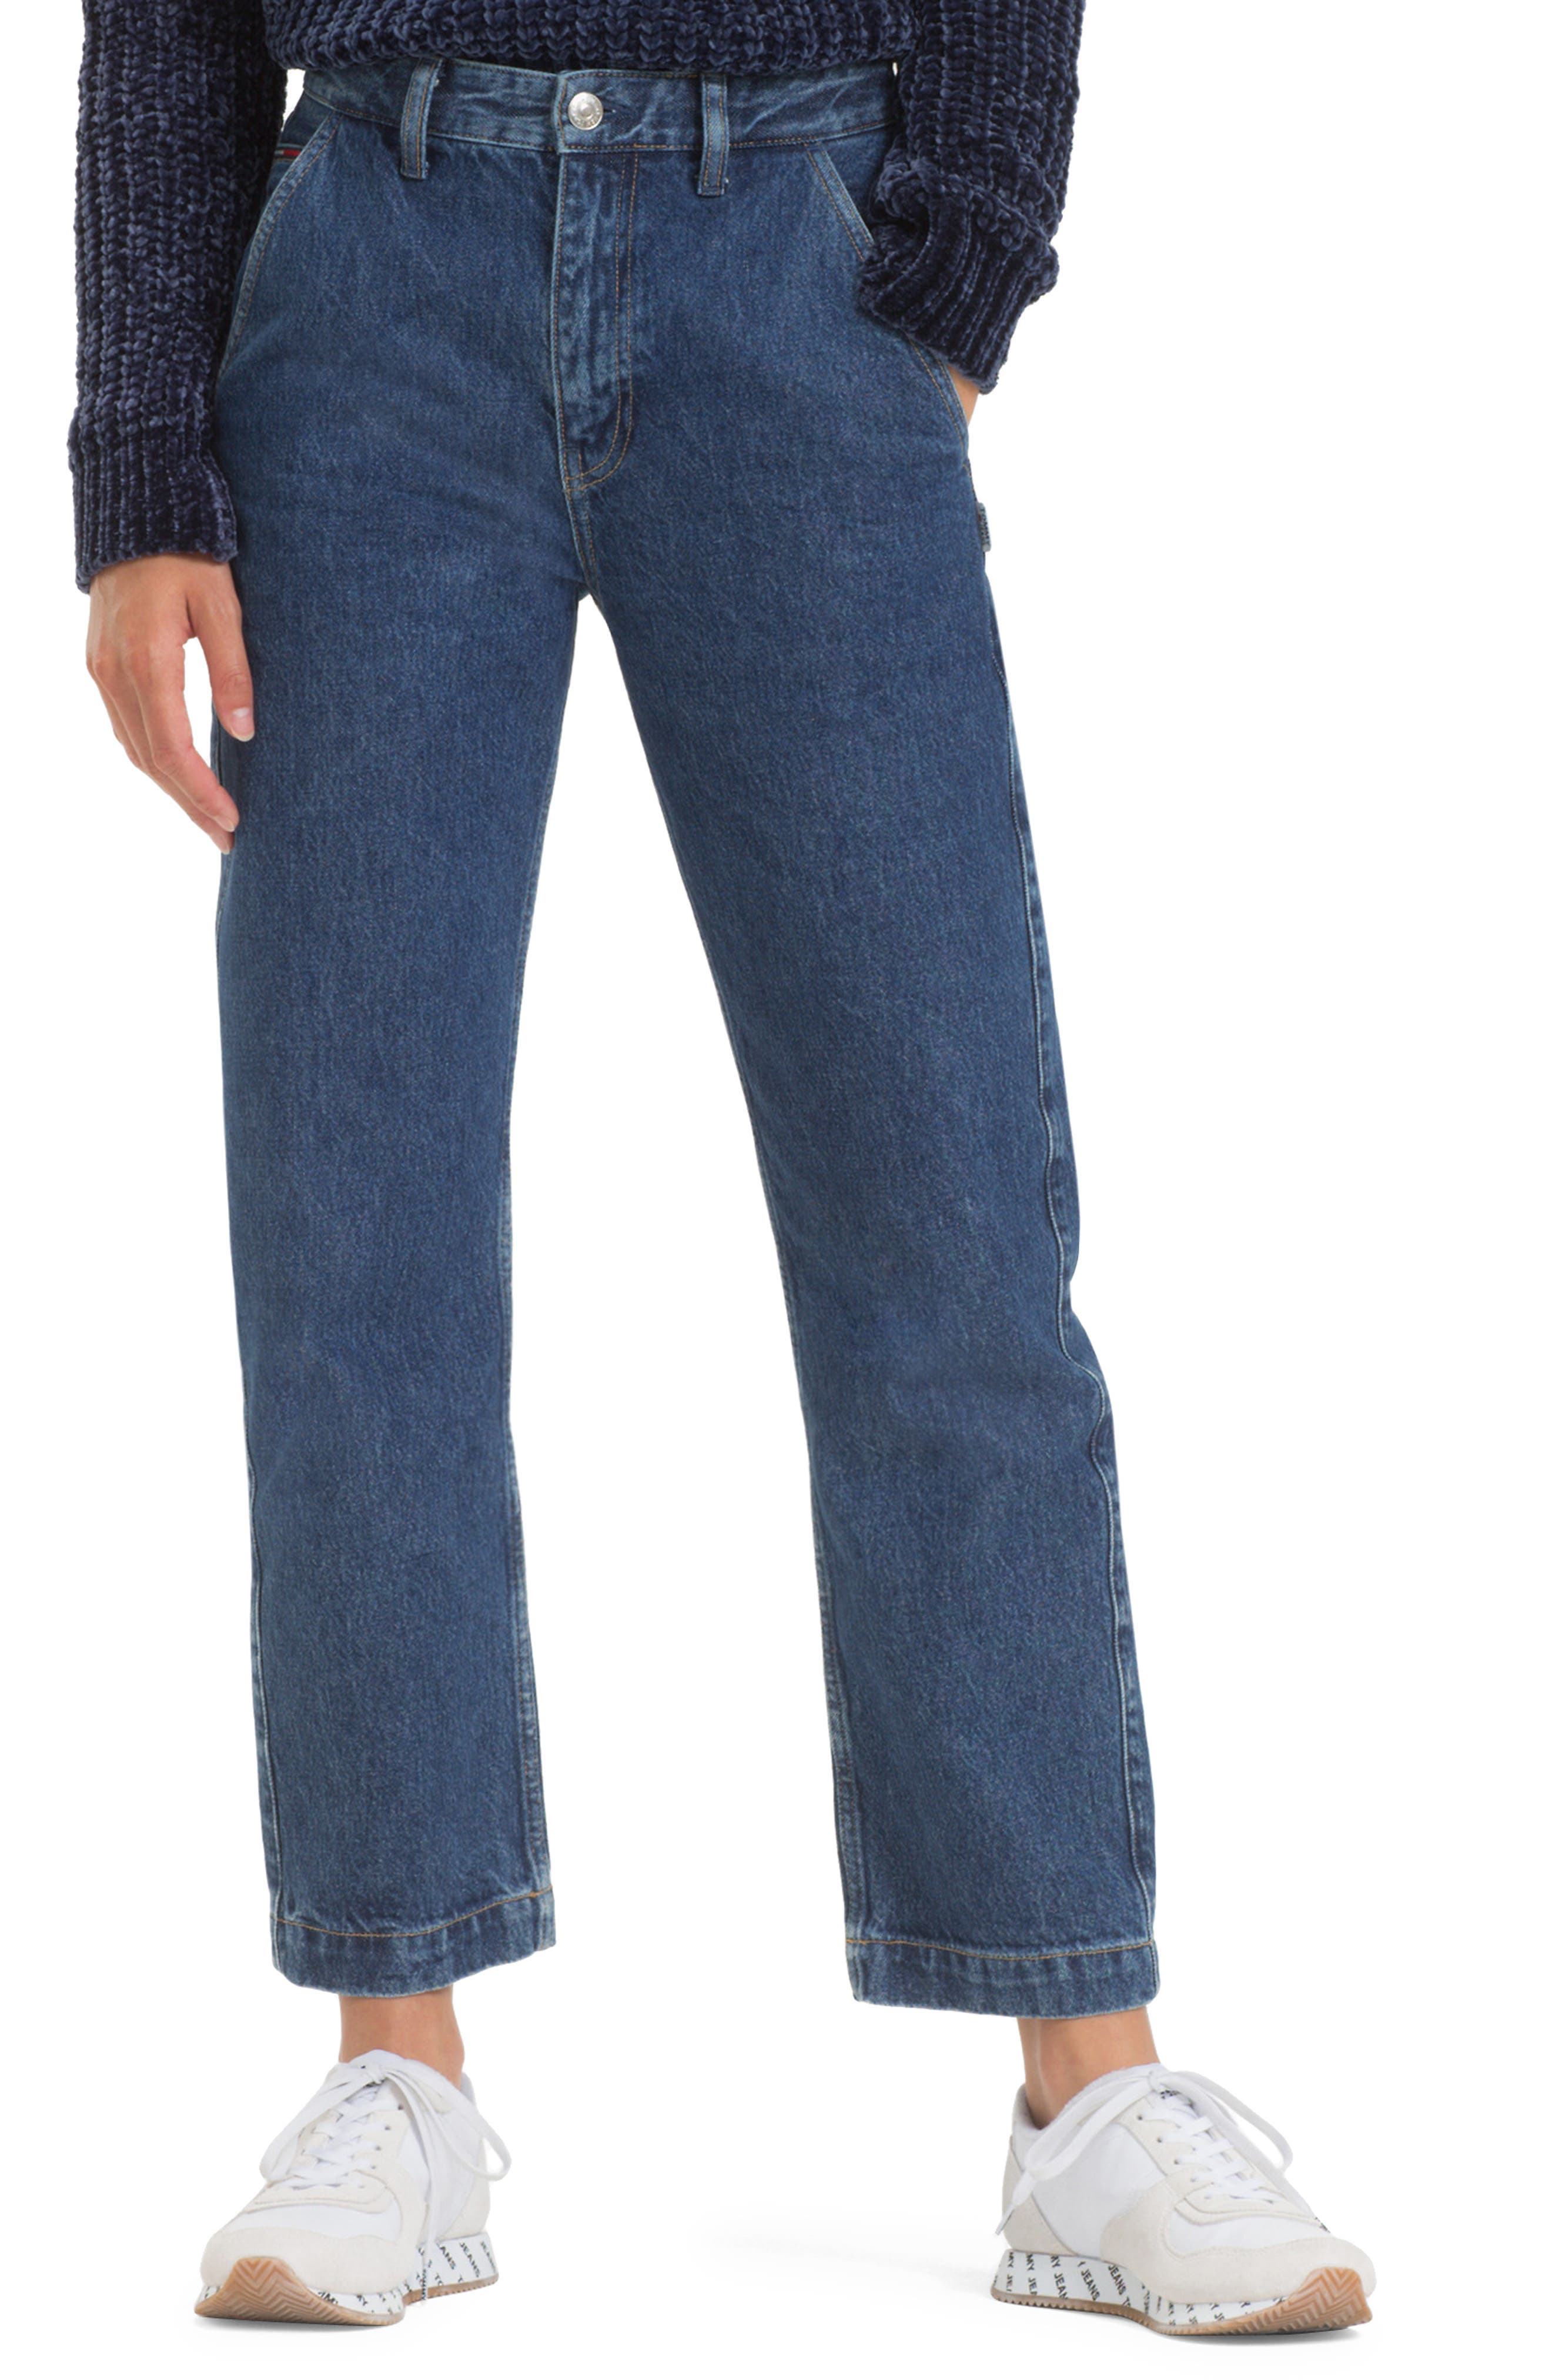 TOMMY JEANS, TJW Straight Leg Jeans, Main thumbnail 1, color, 400